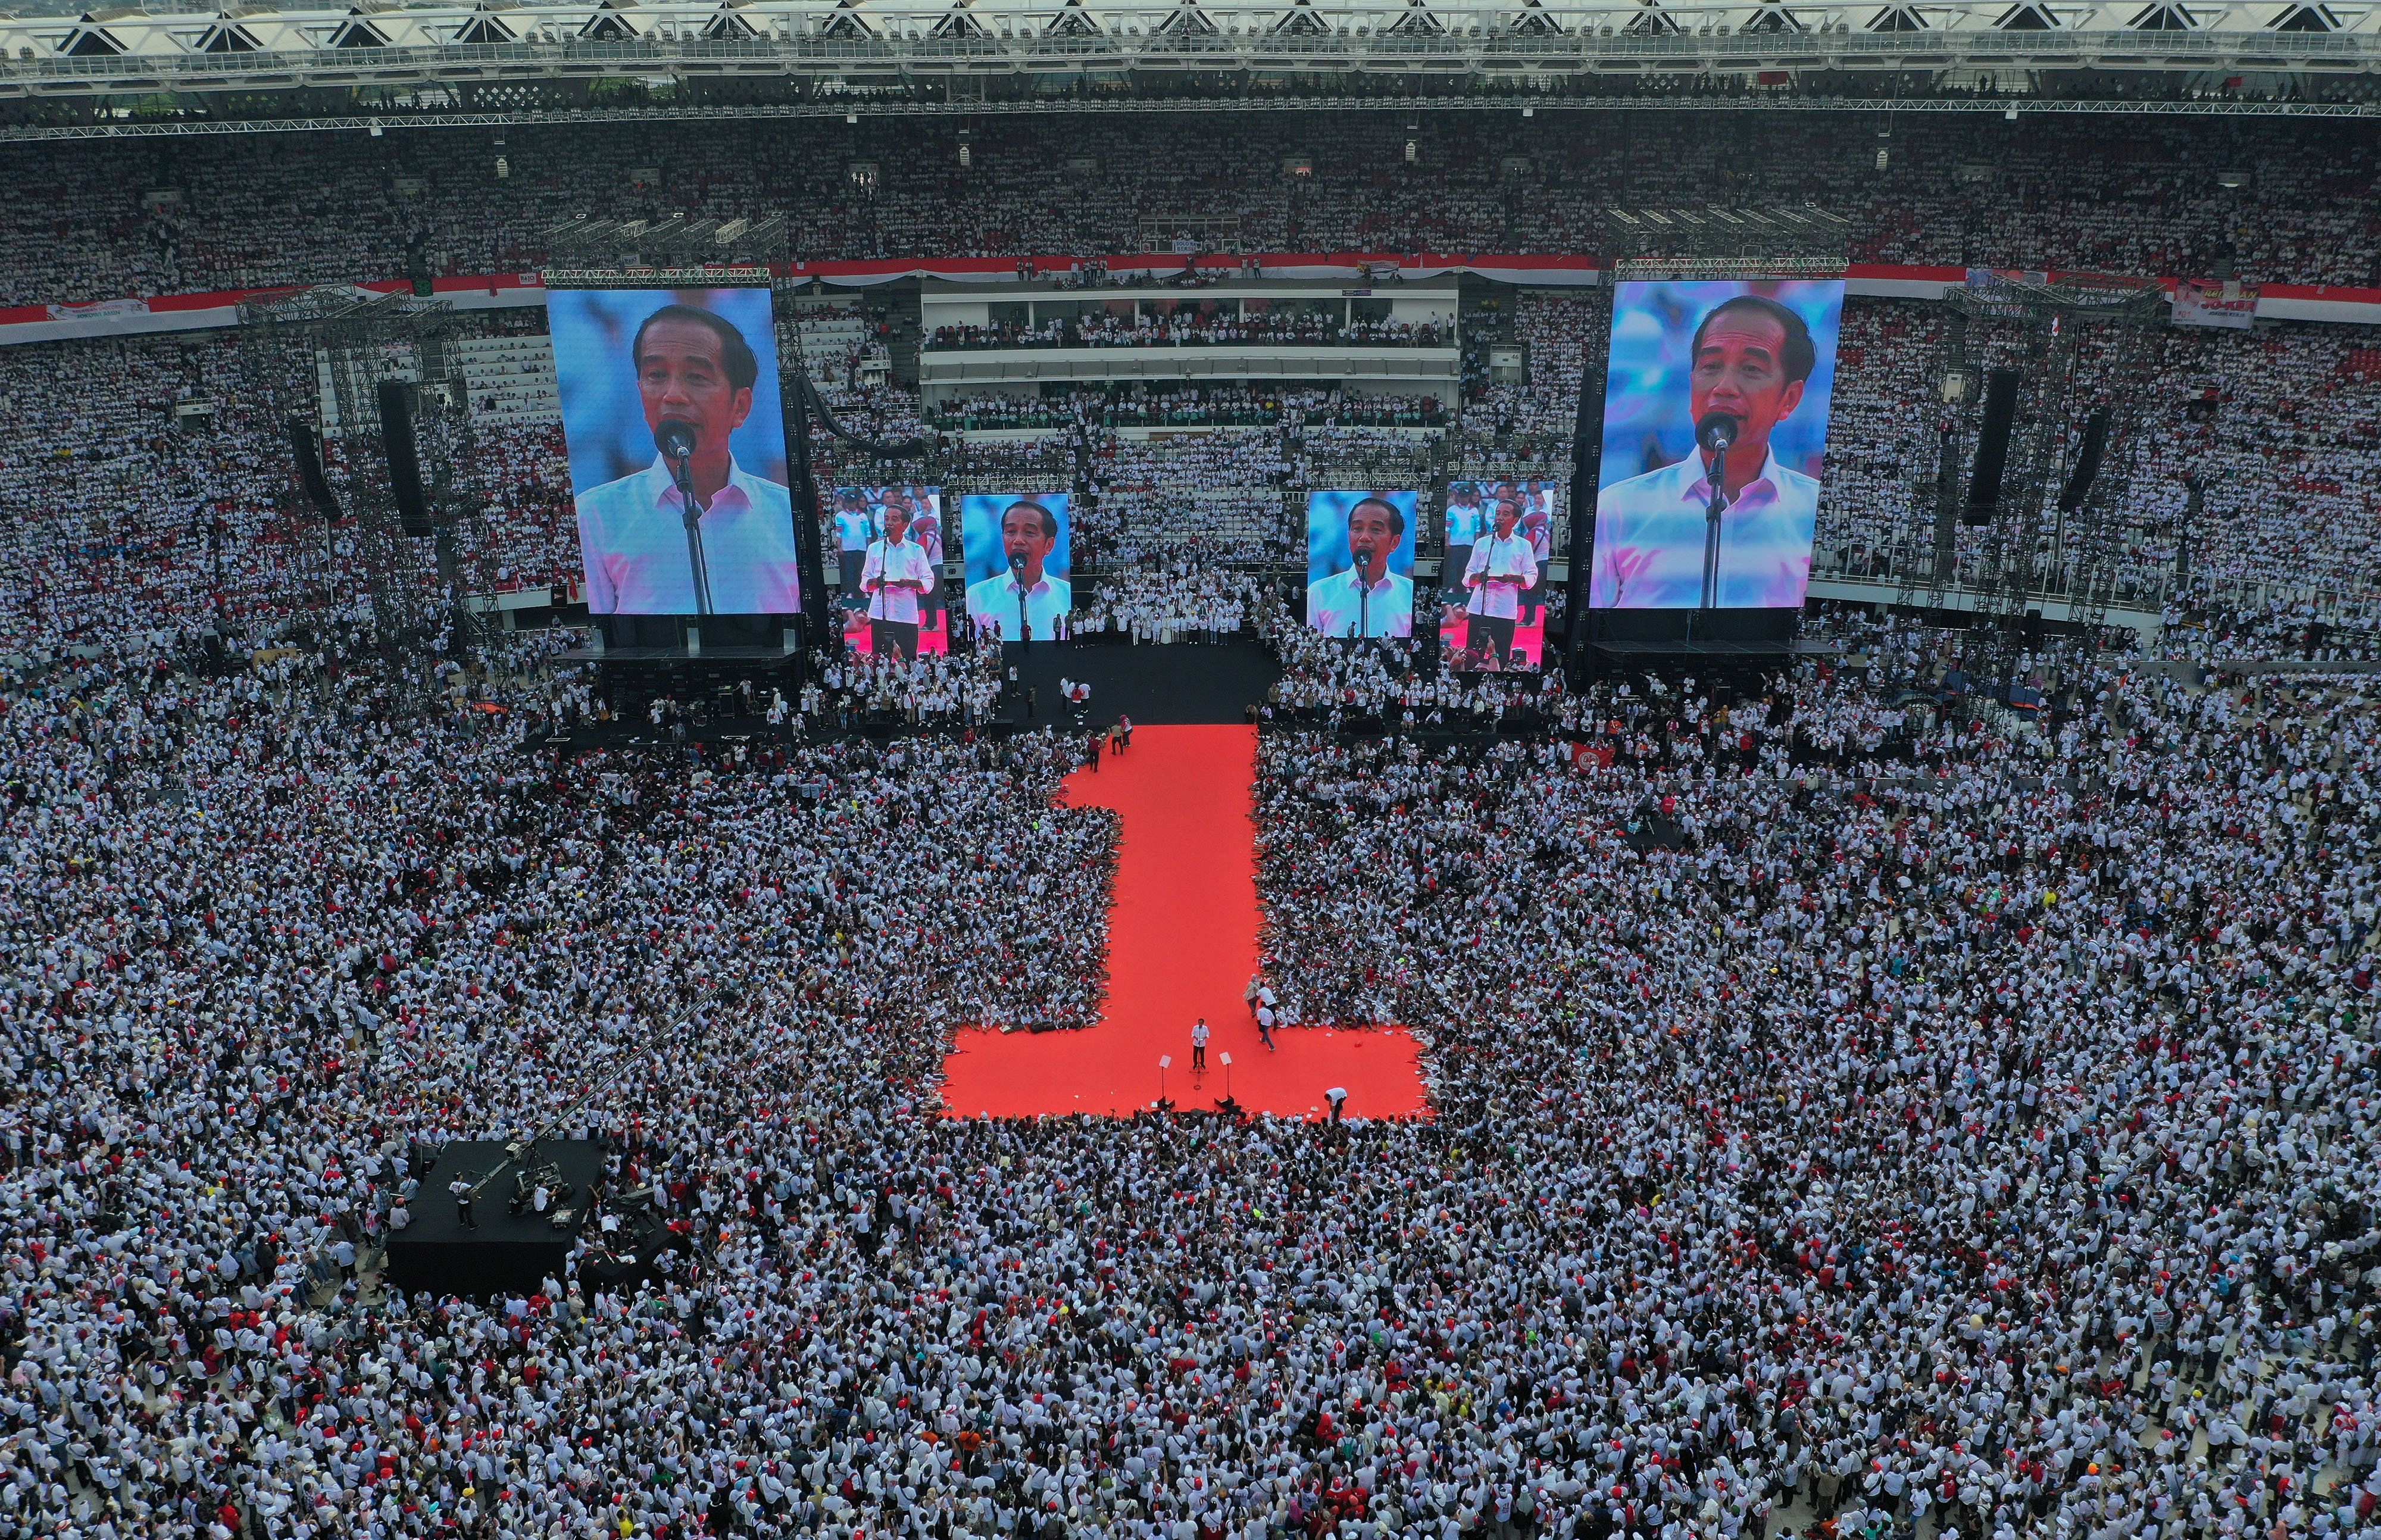 Indonesia: Jokowi For The Win, But With What Baggage?